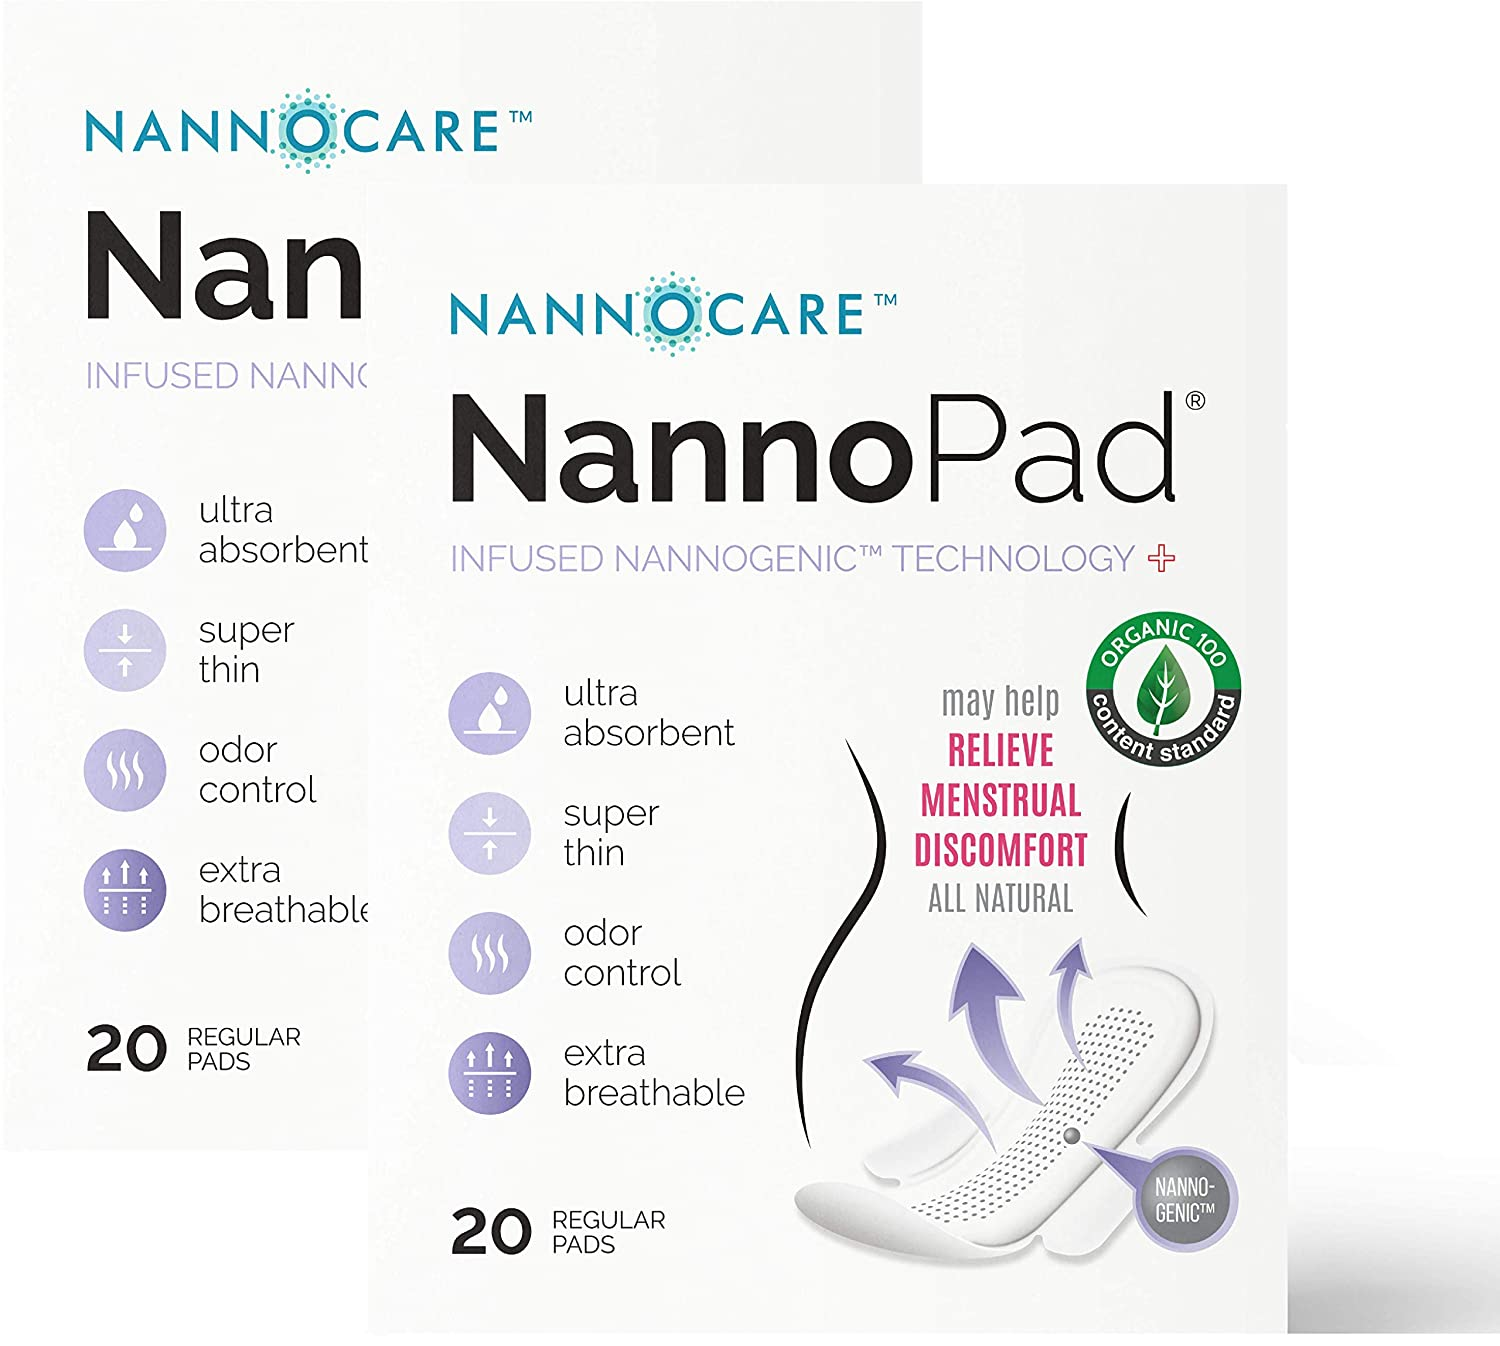 Amazon.com: NannoPad Regular 20 Count Organic Cotton Unscented Feminine Day Pads for Women Period - Regular Flow Absorbency Ultra Thin Breathable Length ...